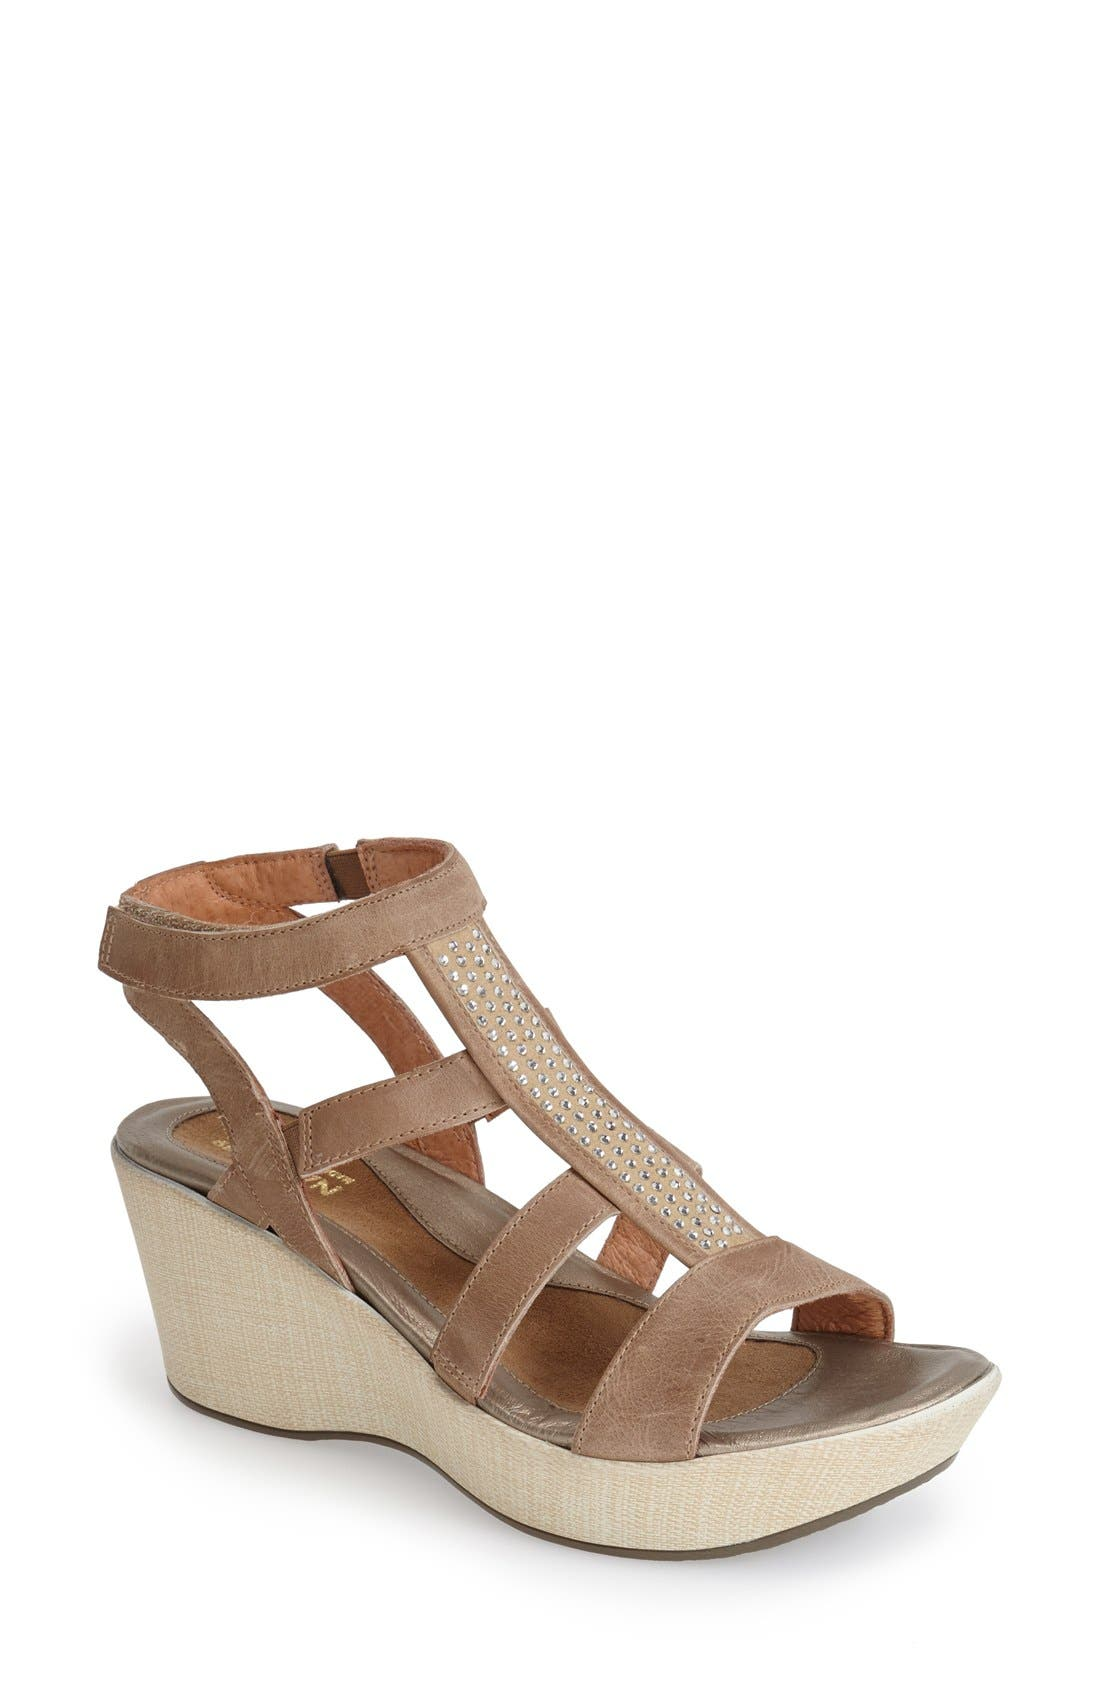 'Mystery' Platform Wedge Sandal,                         Main,                         color,